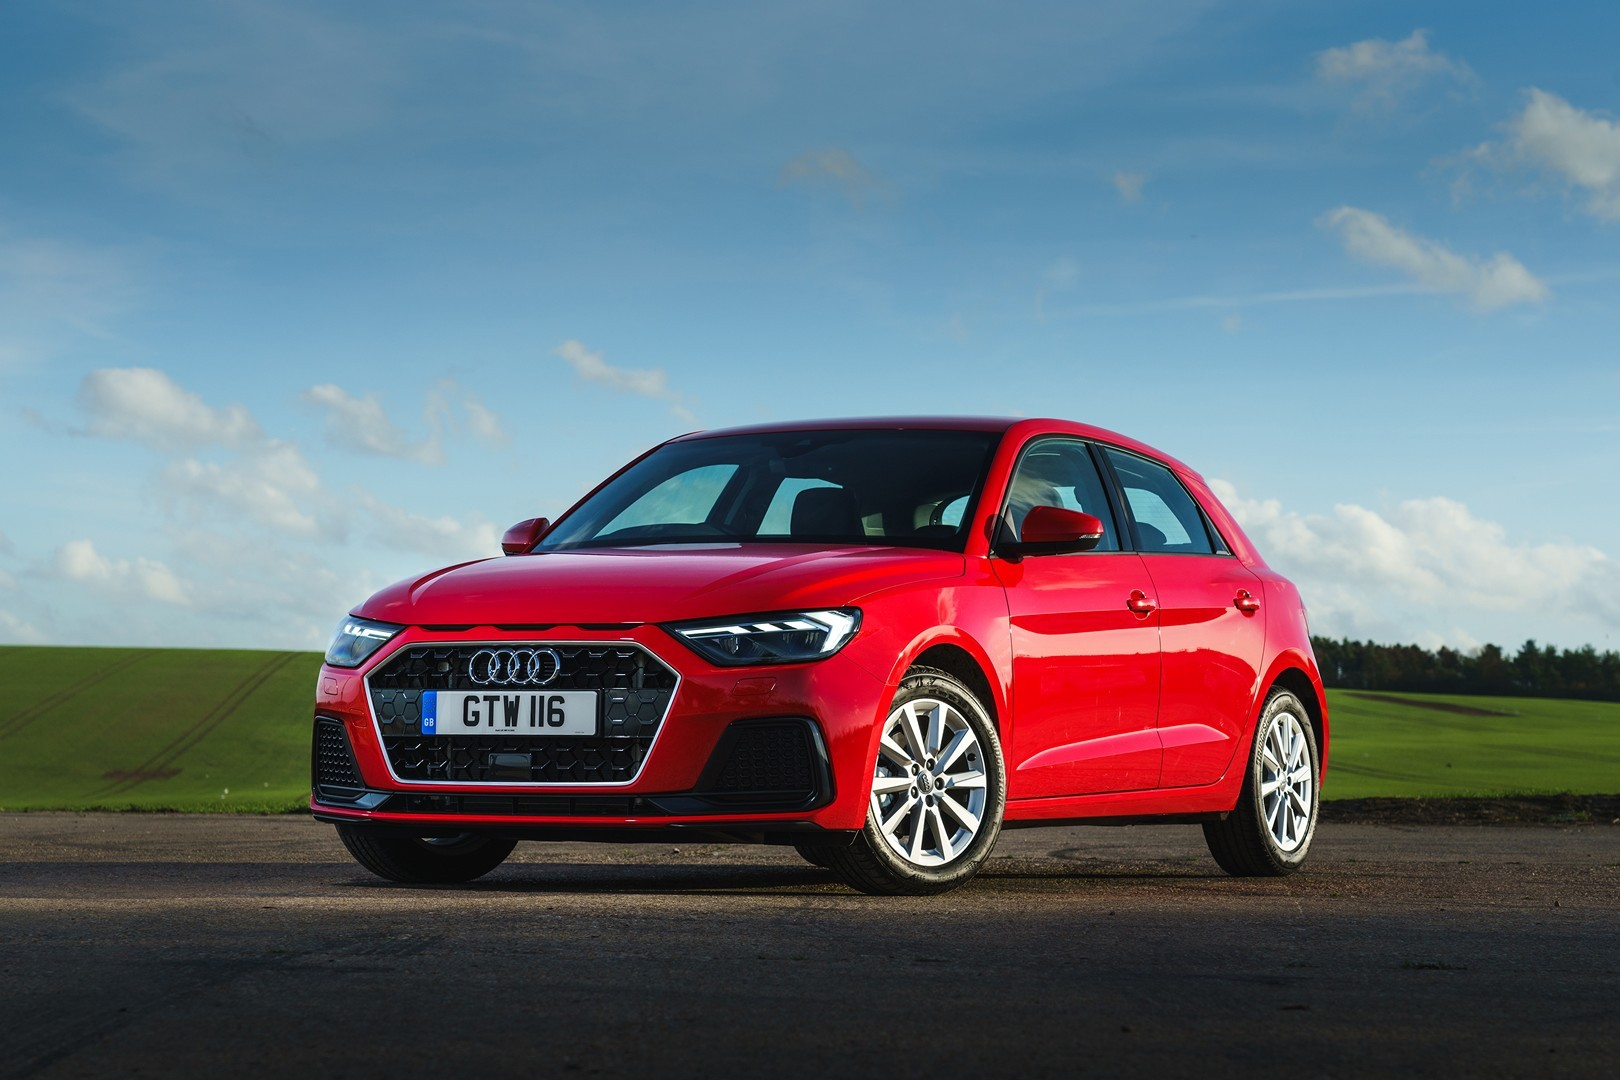 2019 Audi A1 Uk Review Suggests Its A Vw Polo For Badge Snobs